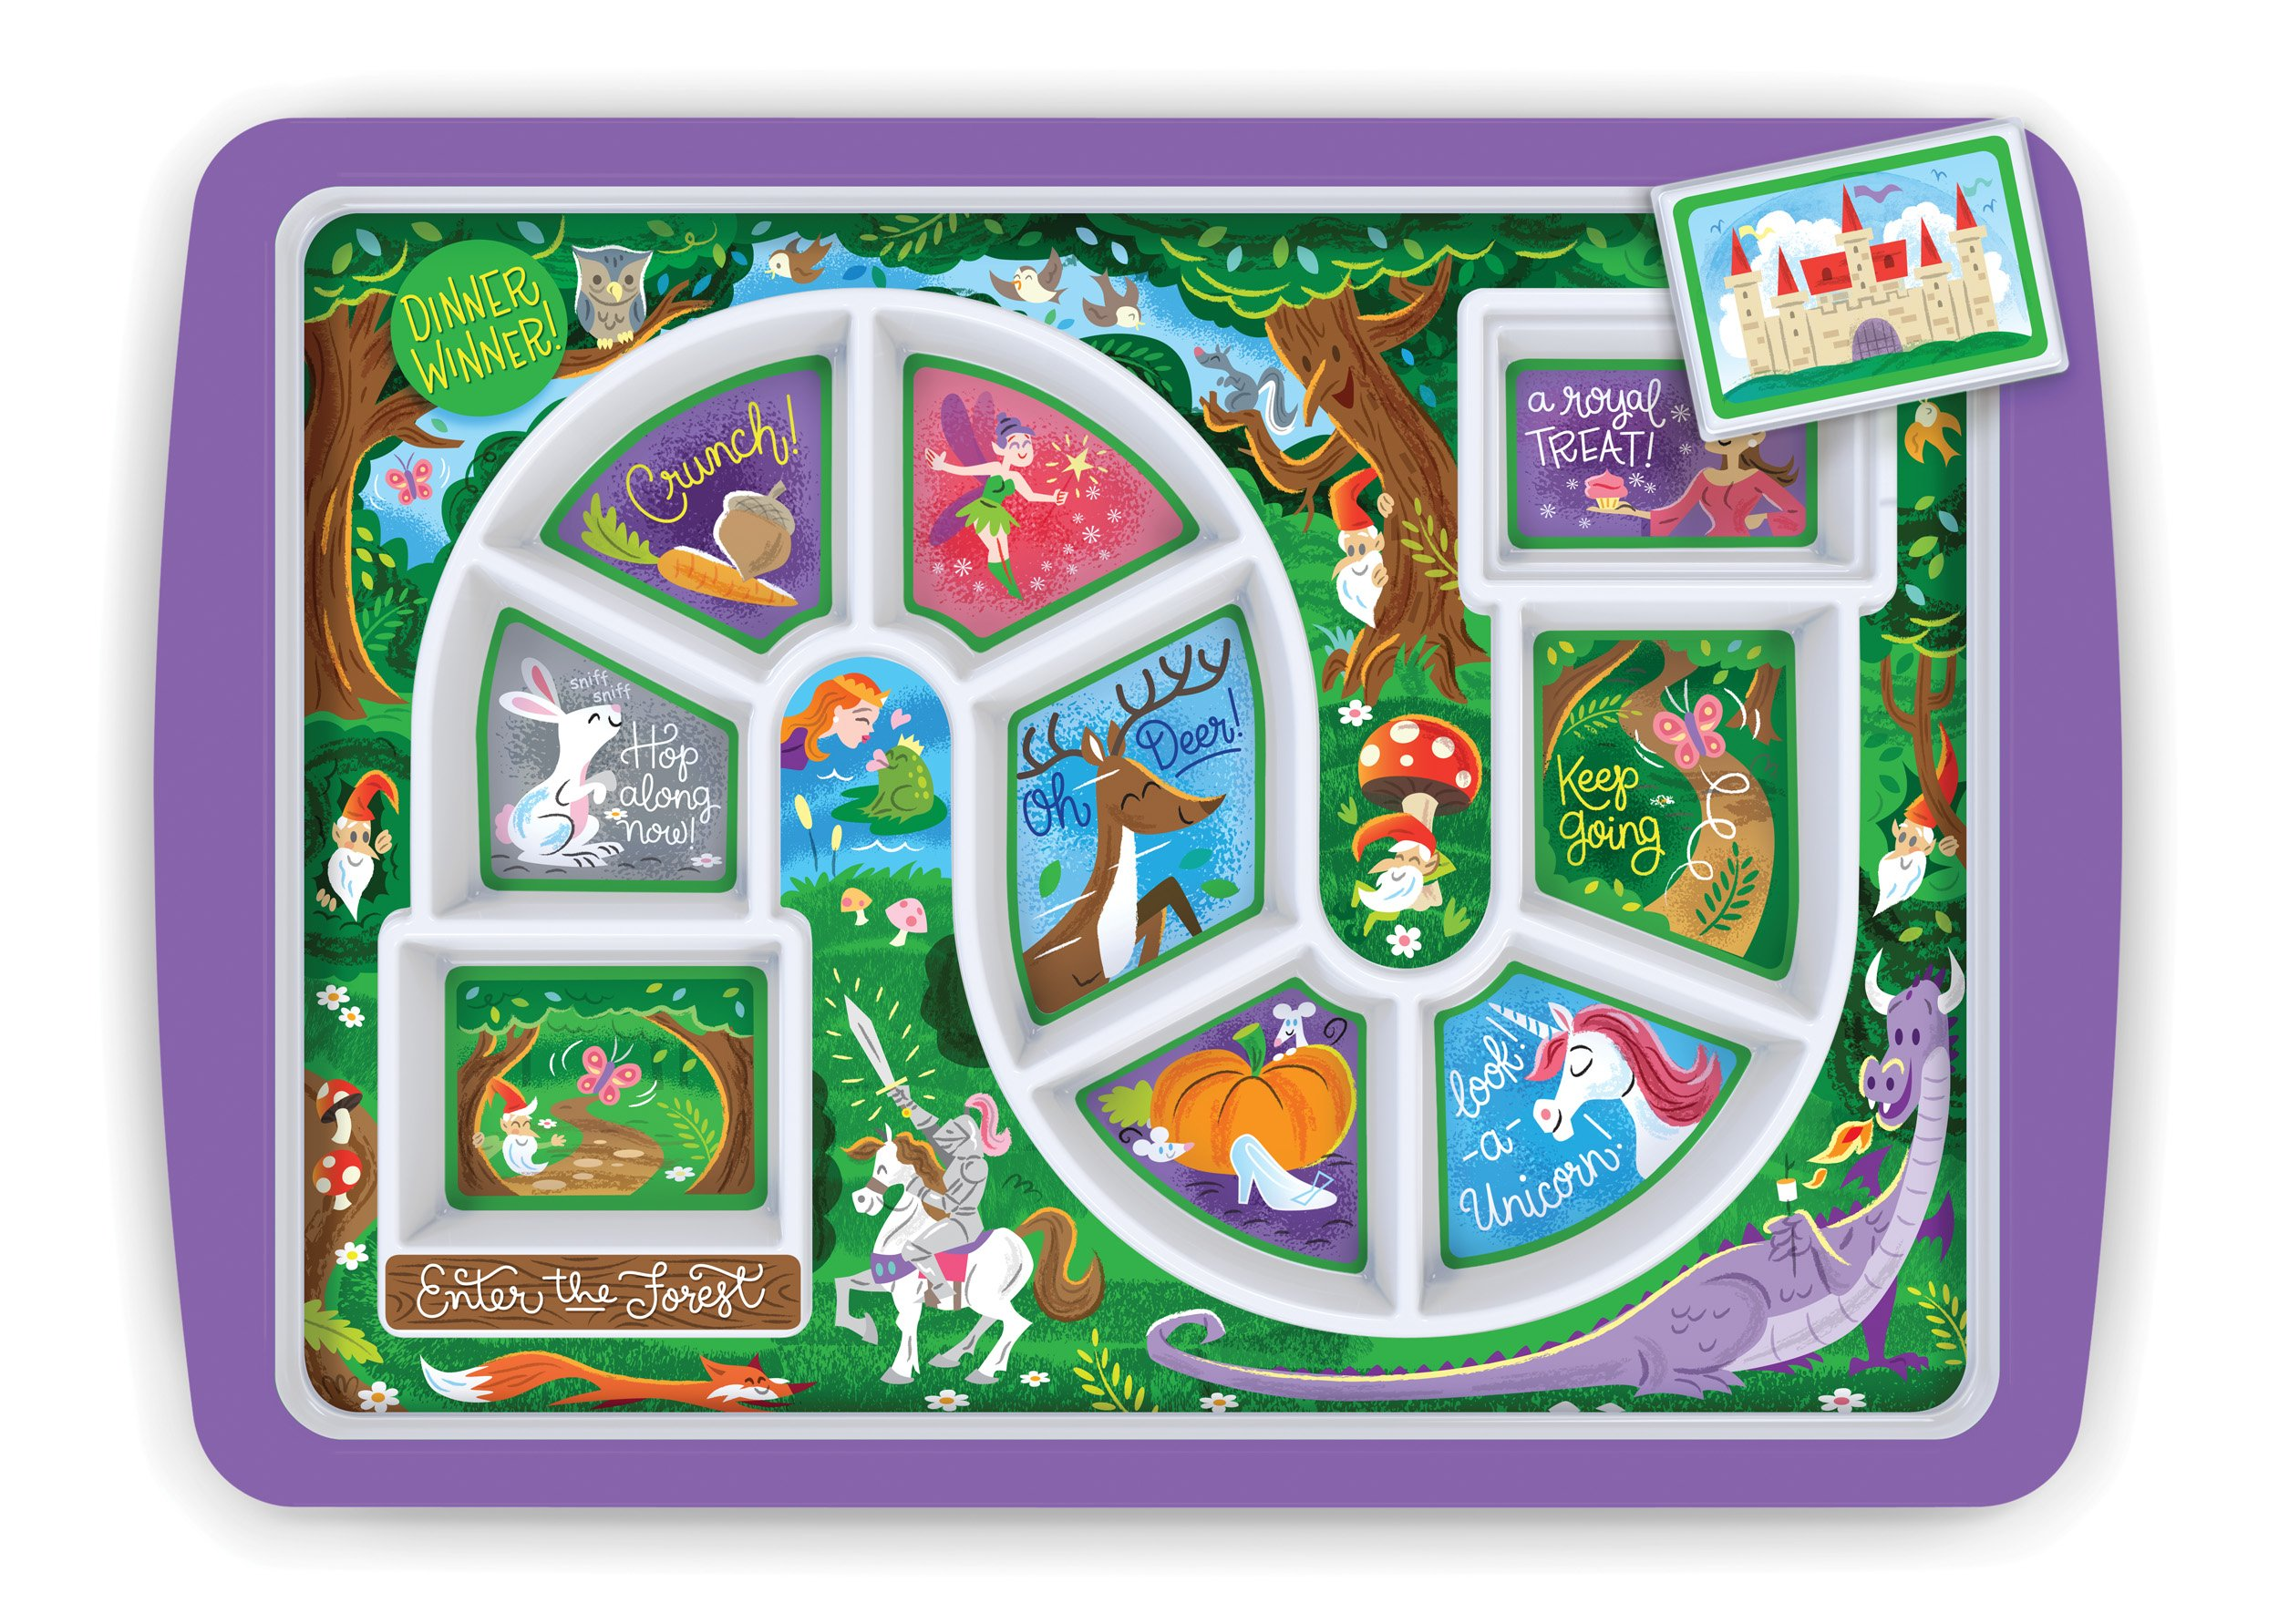 Fred DINNER WINNER Kids' Dinner Tray, Enchanted Forest by Fred & Friends (Image #1)